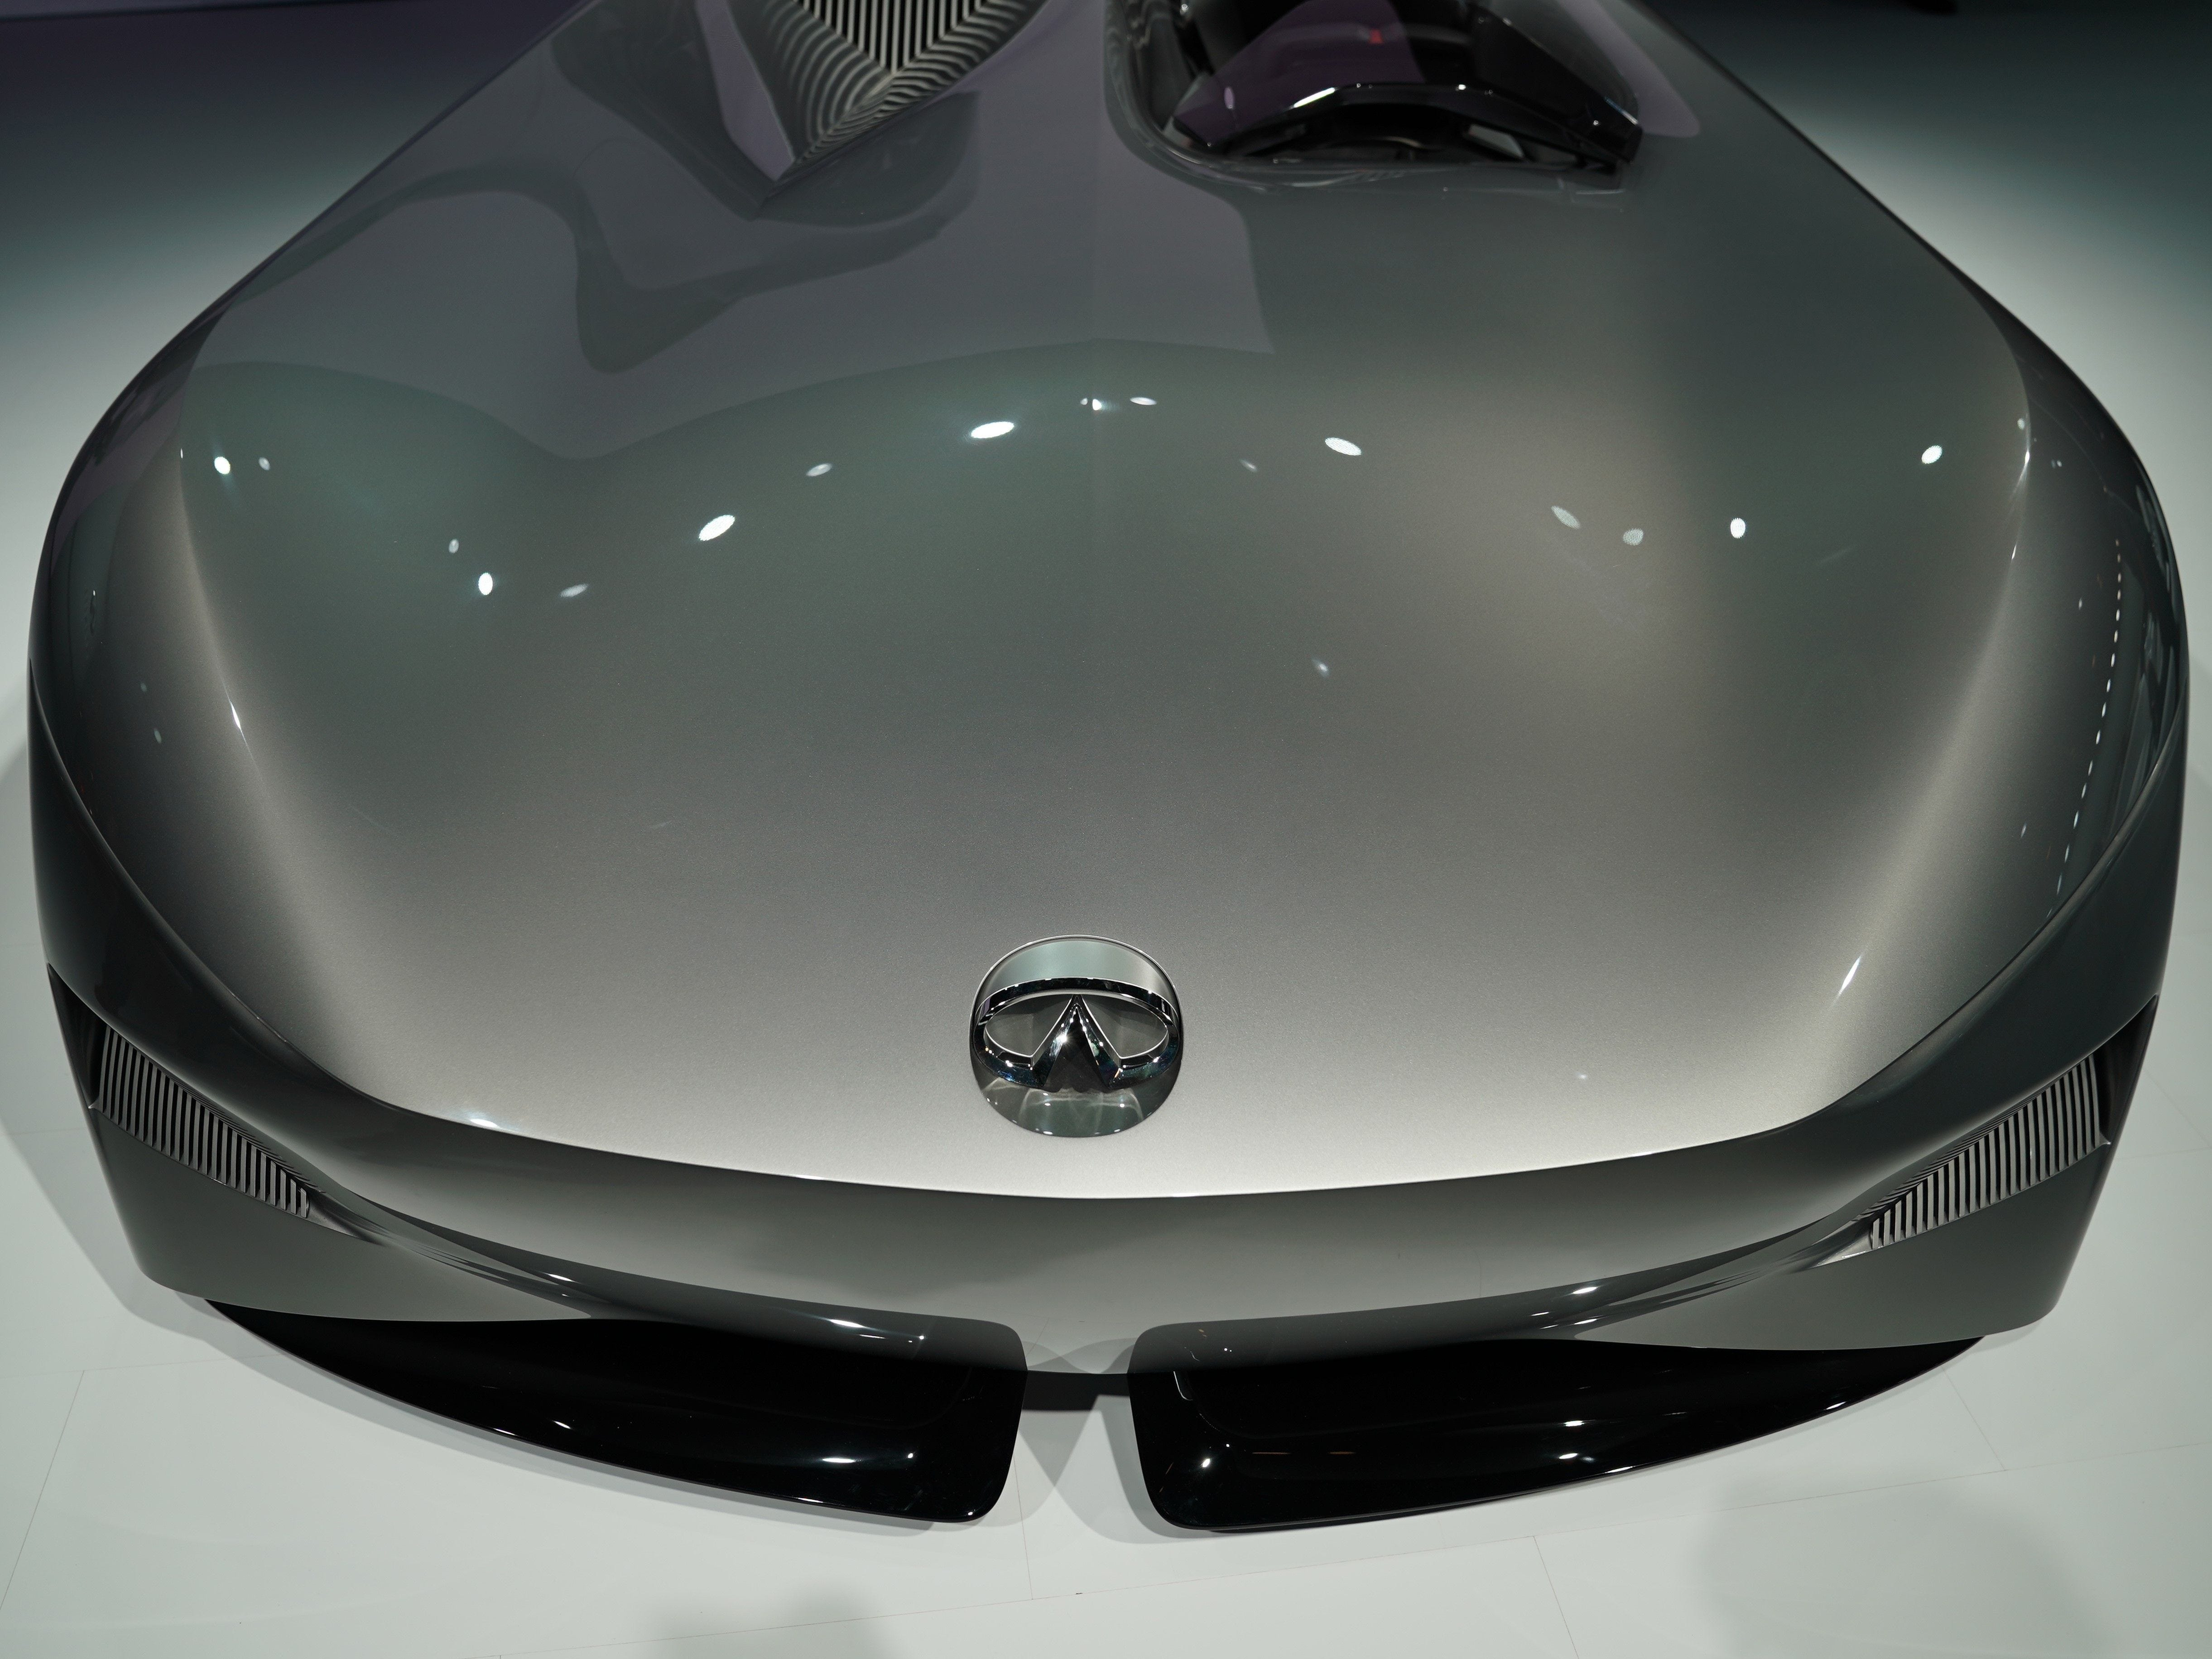 The Infiniti Prototype 10 concept car.